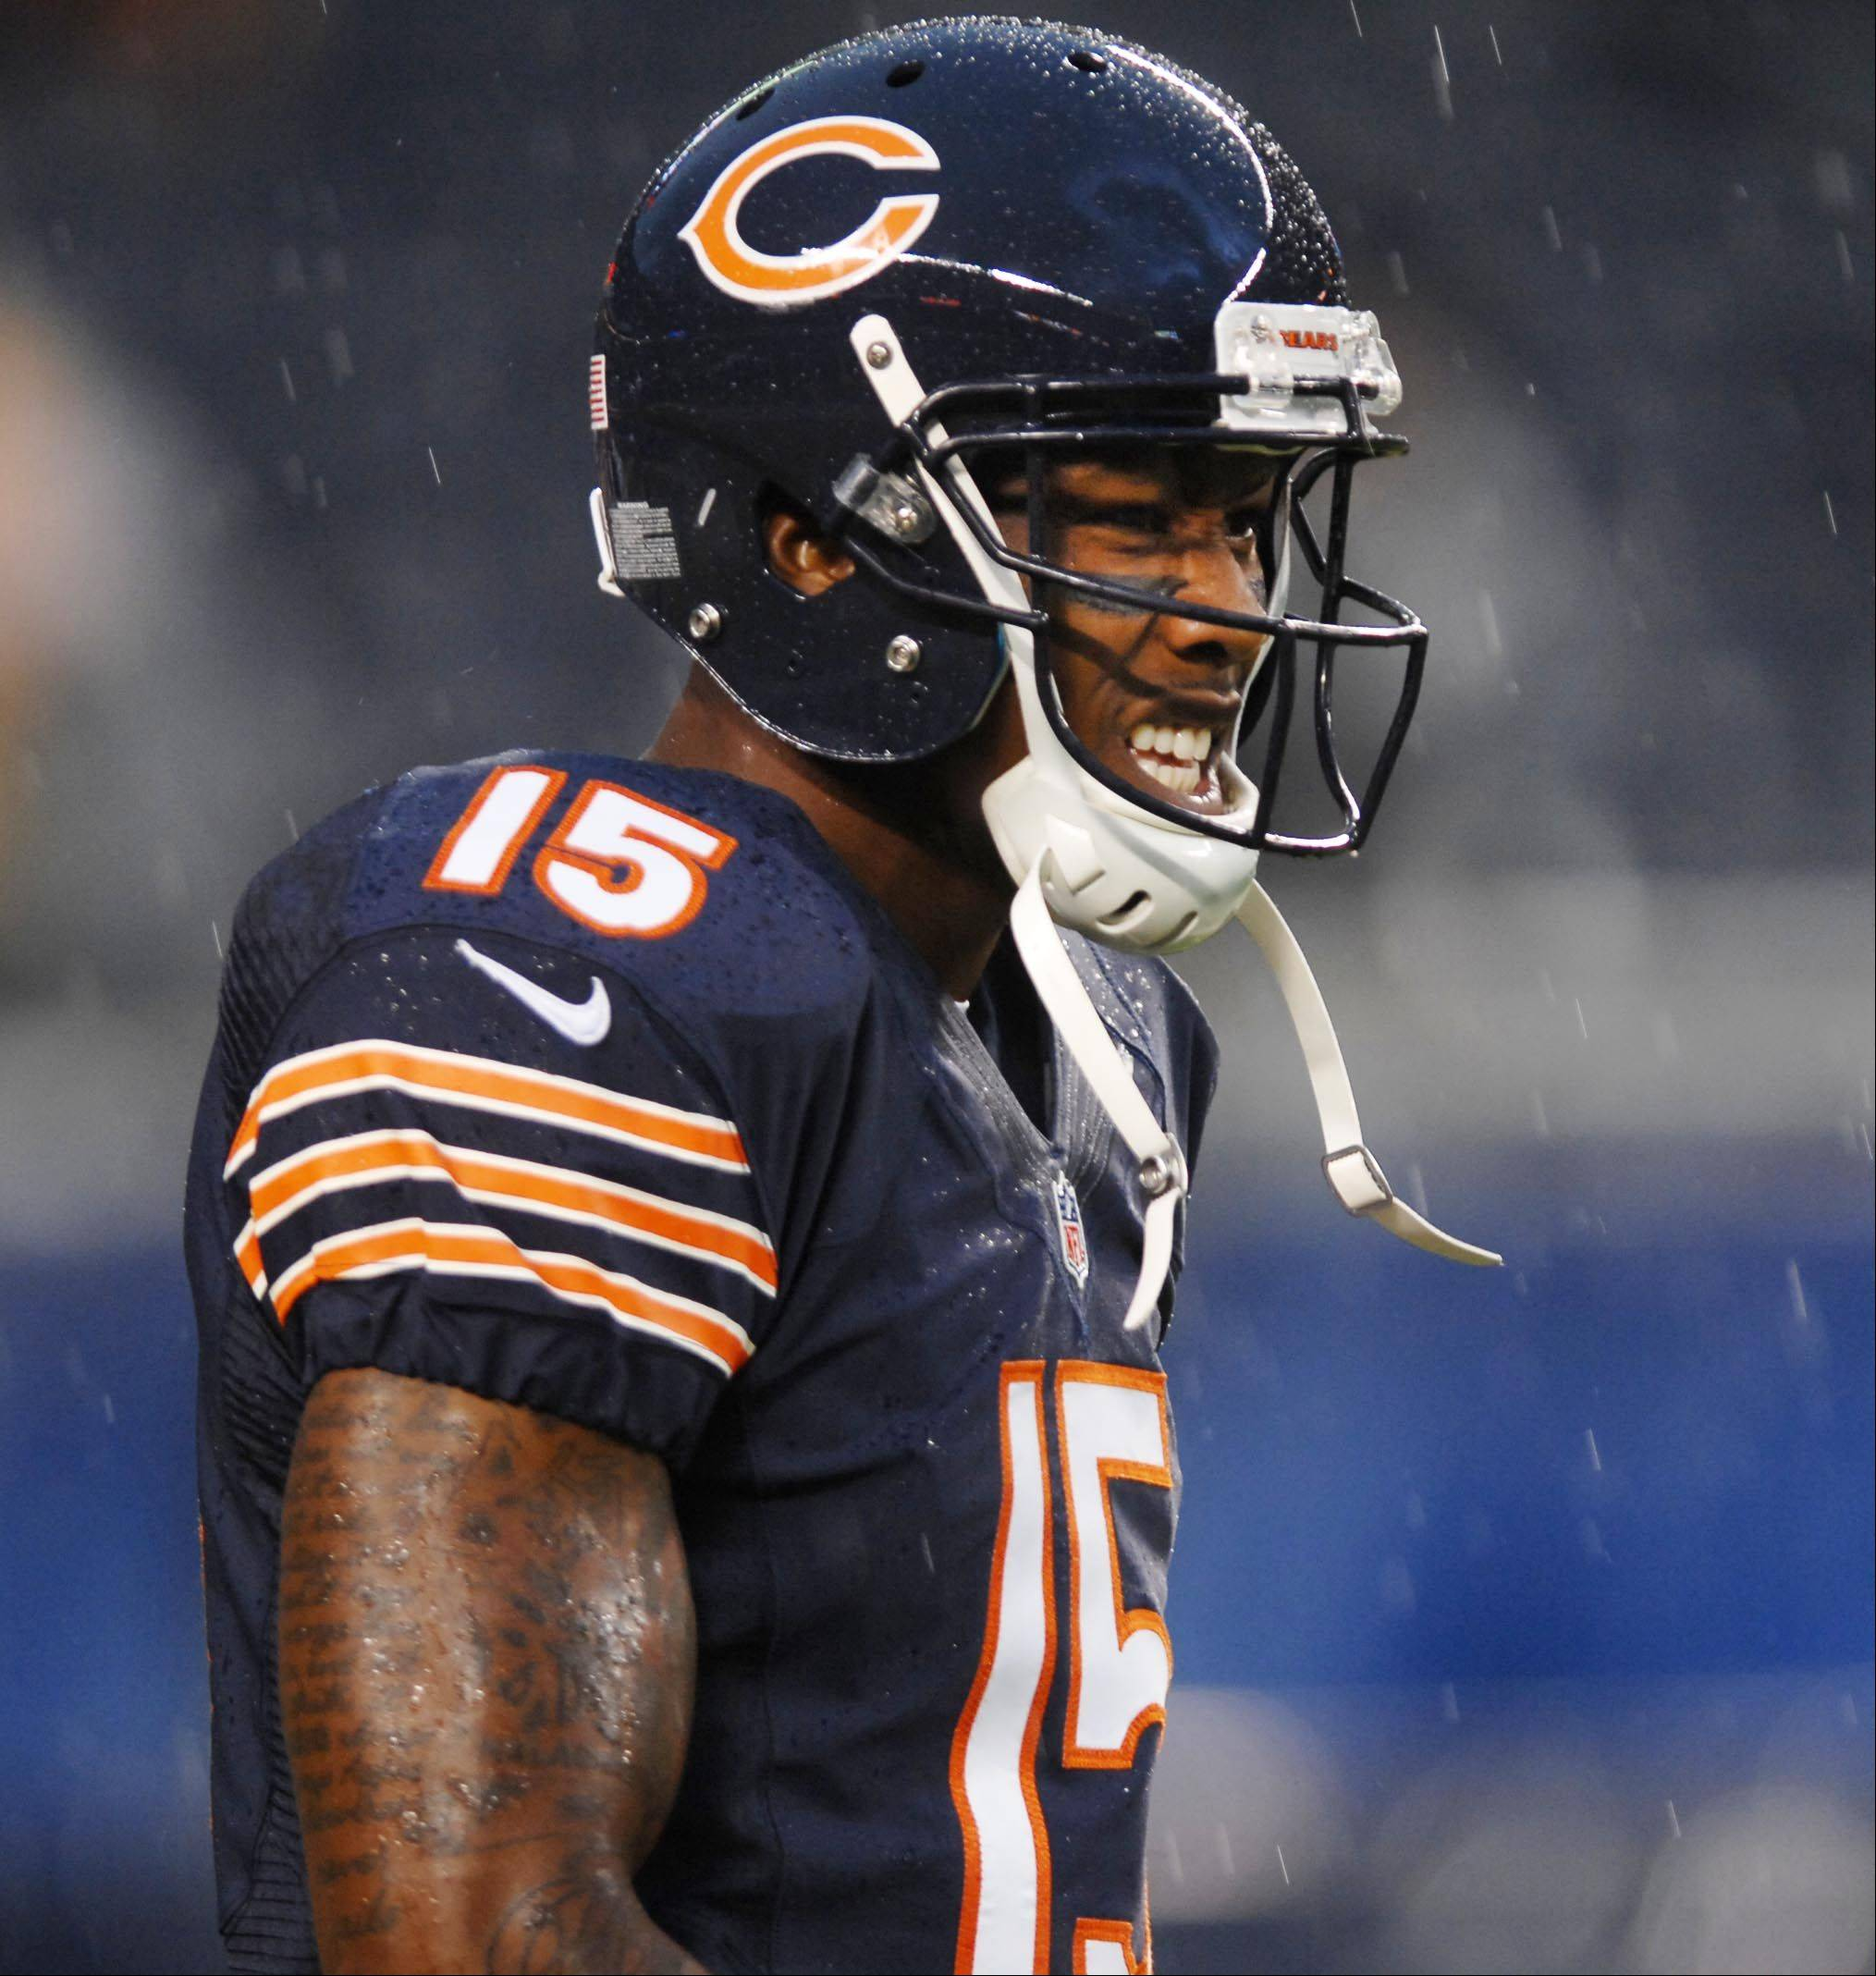 John Starks/jstarks@dailyherald.com Brandon Marshall is sure to start the season at wide recevier for the Bears, but where does that leave Dane Sanzenbacher and Eric Weems? Their special teams contributions could be the deciding factor when it comes to final decisions on the 53-man roster.